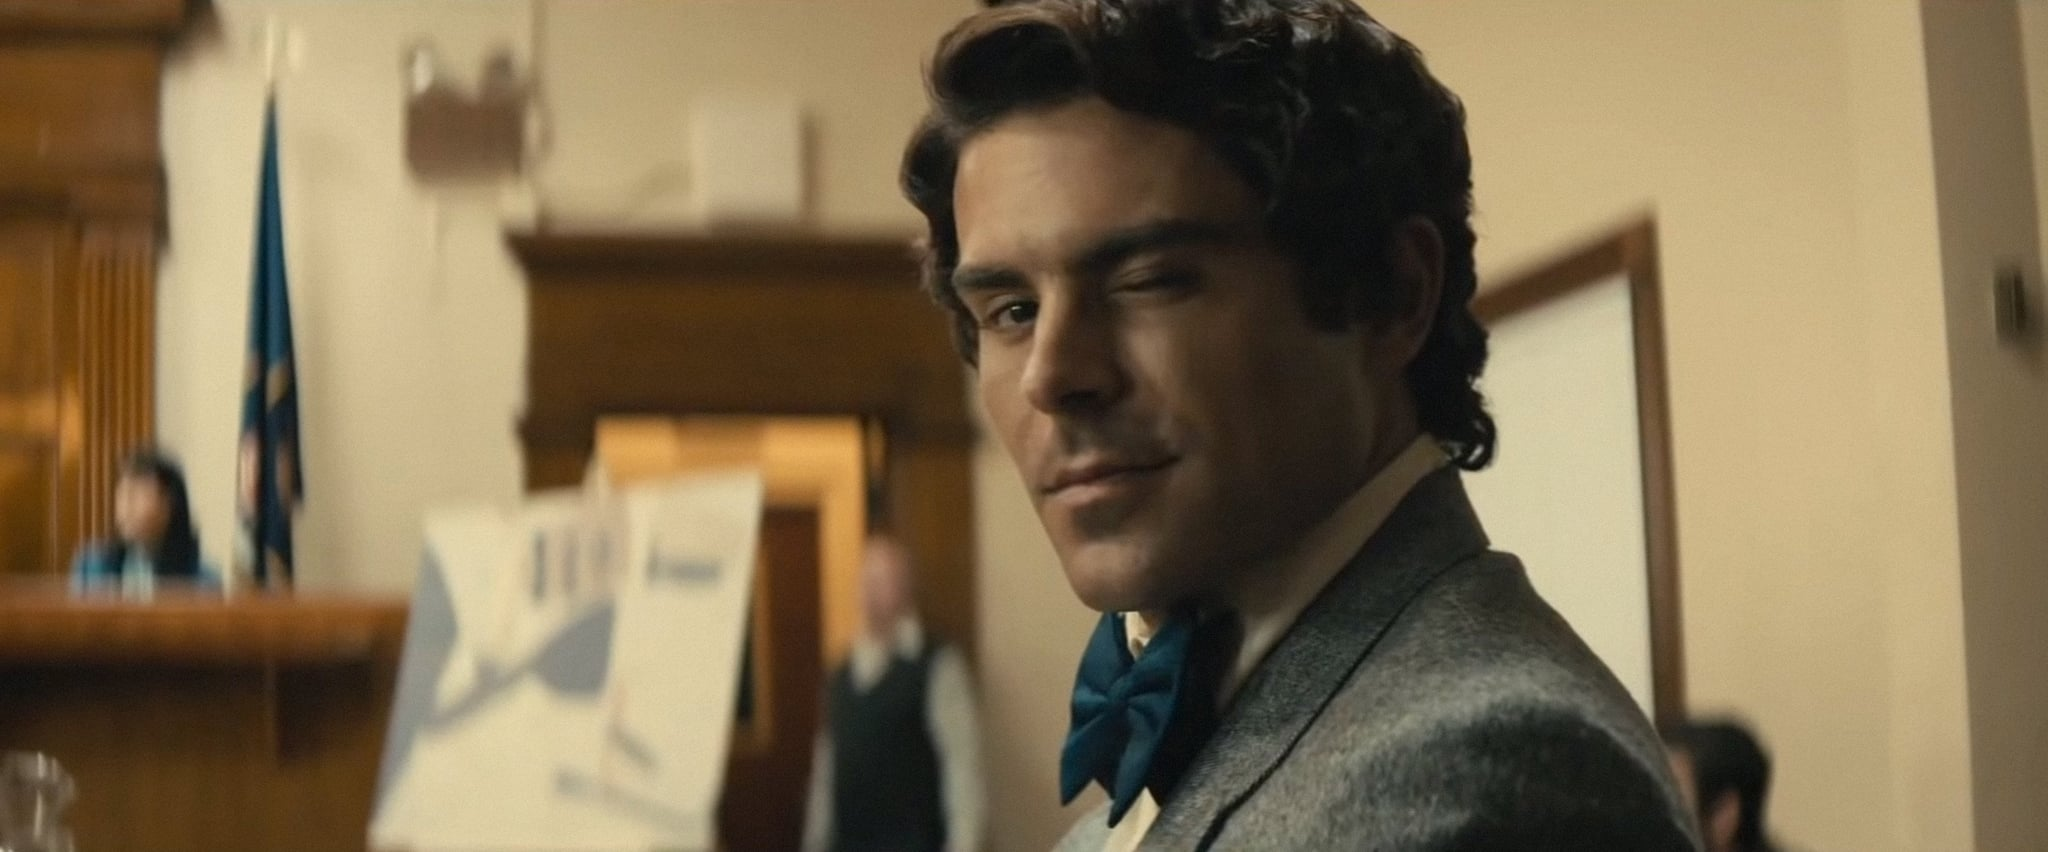 EXTREMELY WICKED, SHOCKINGLY EVIL, AND VILE, Zac Efron as Ted Bundy, 2019.  Netflix / courtesy Everett Collection